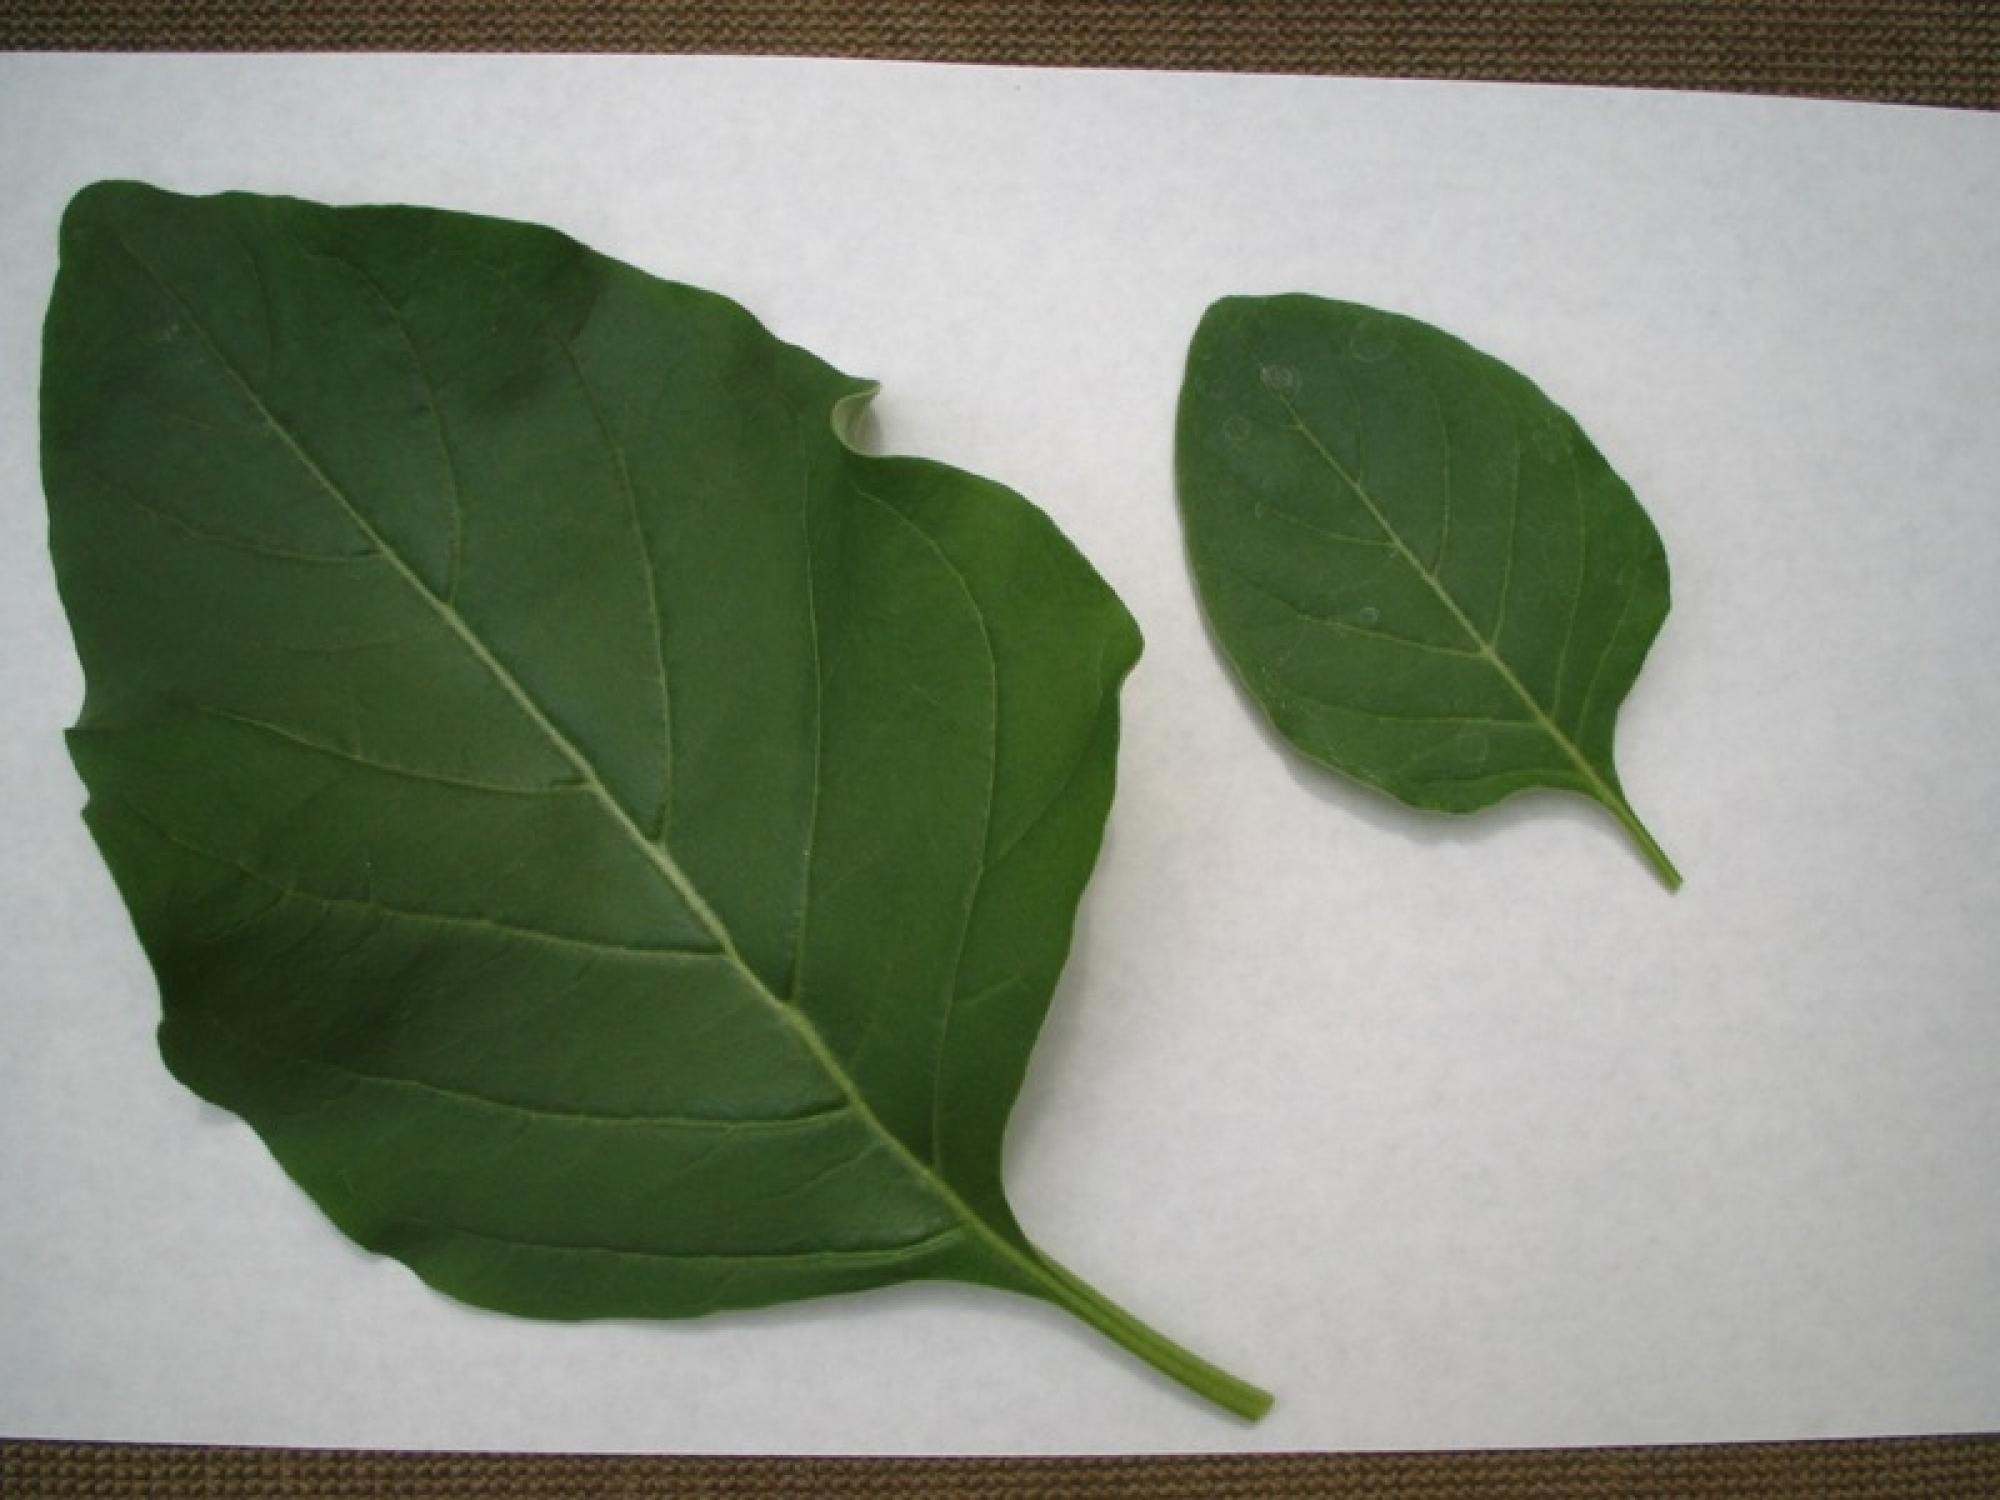 The biomass of Withania, a medicinal plant, is about five times greater in aeroponically-grown plants, as noted in the contrasting leaf sizes above.